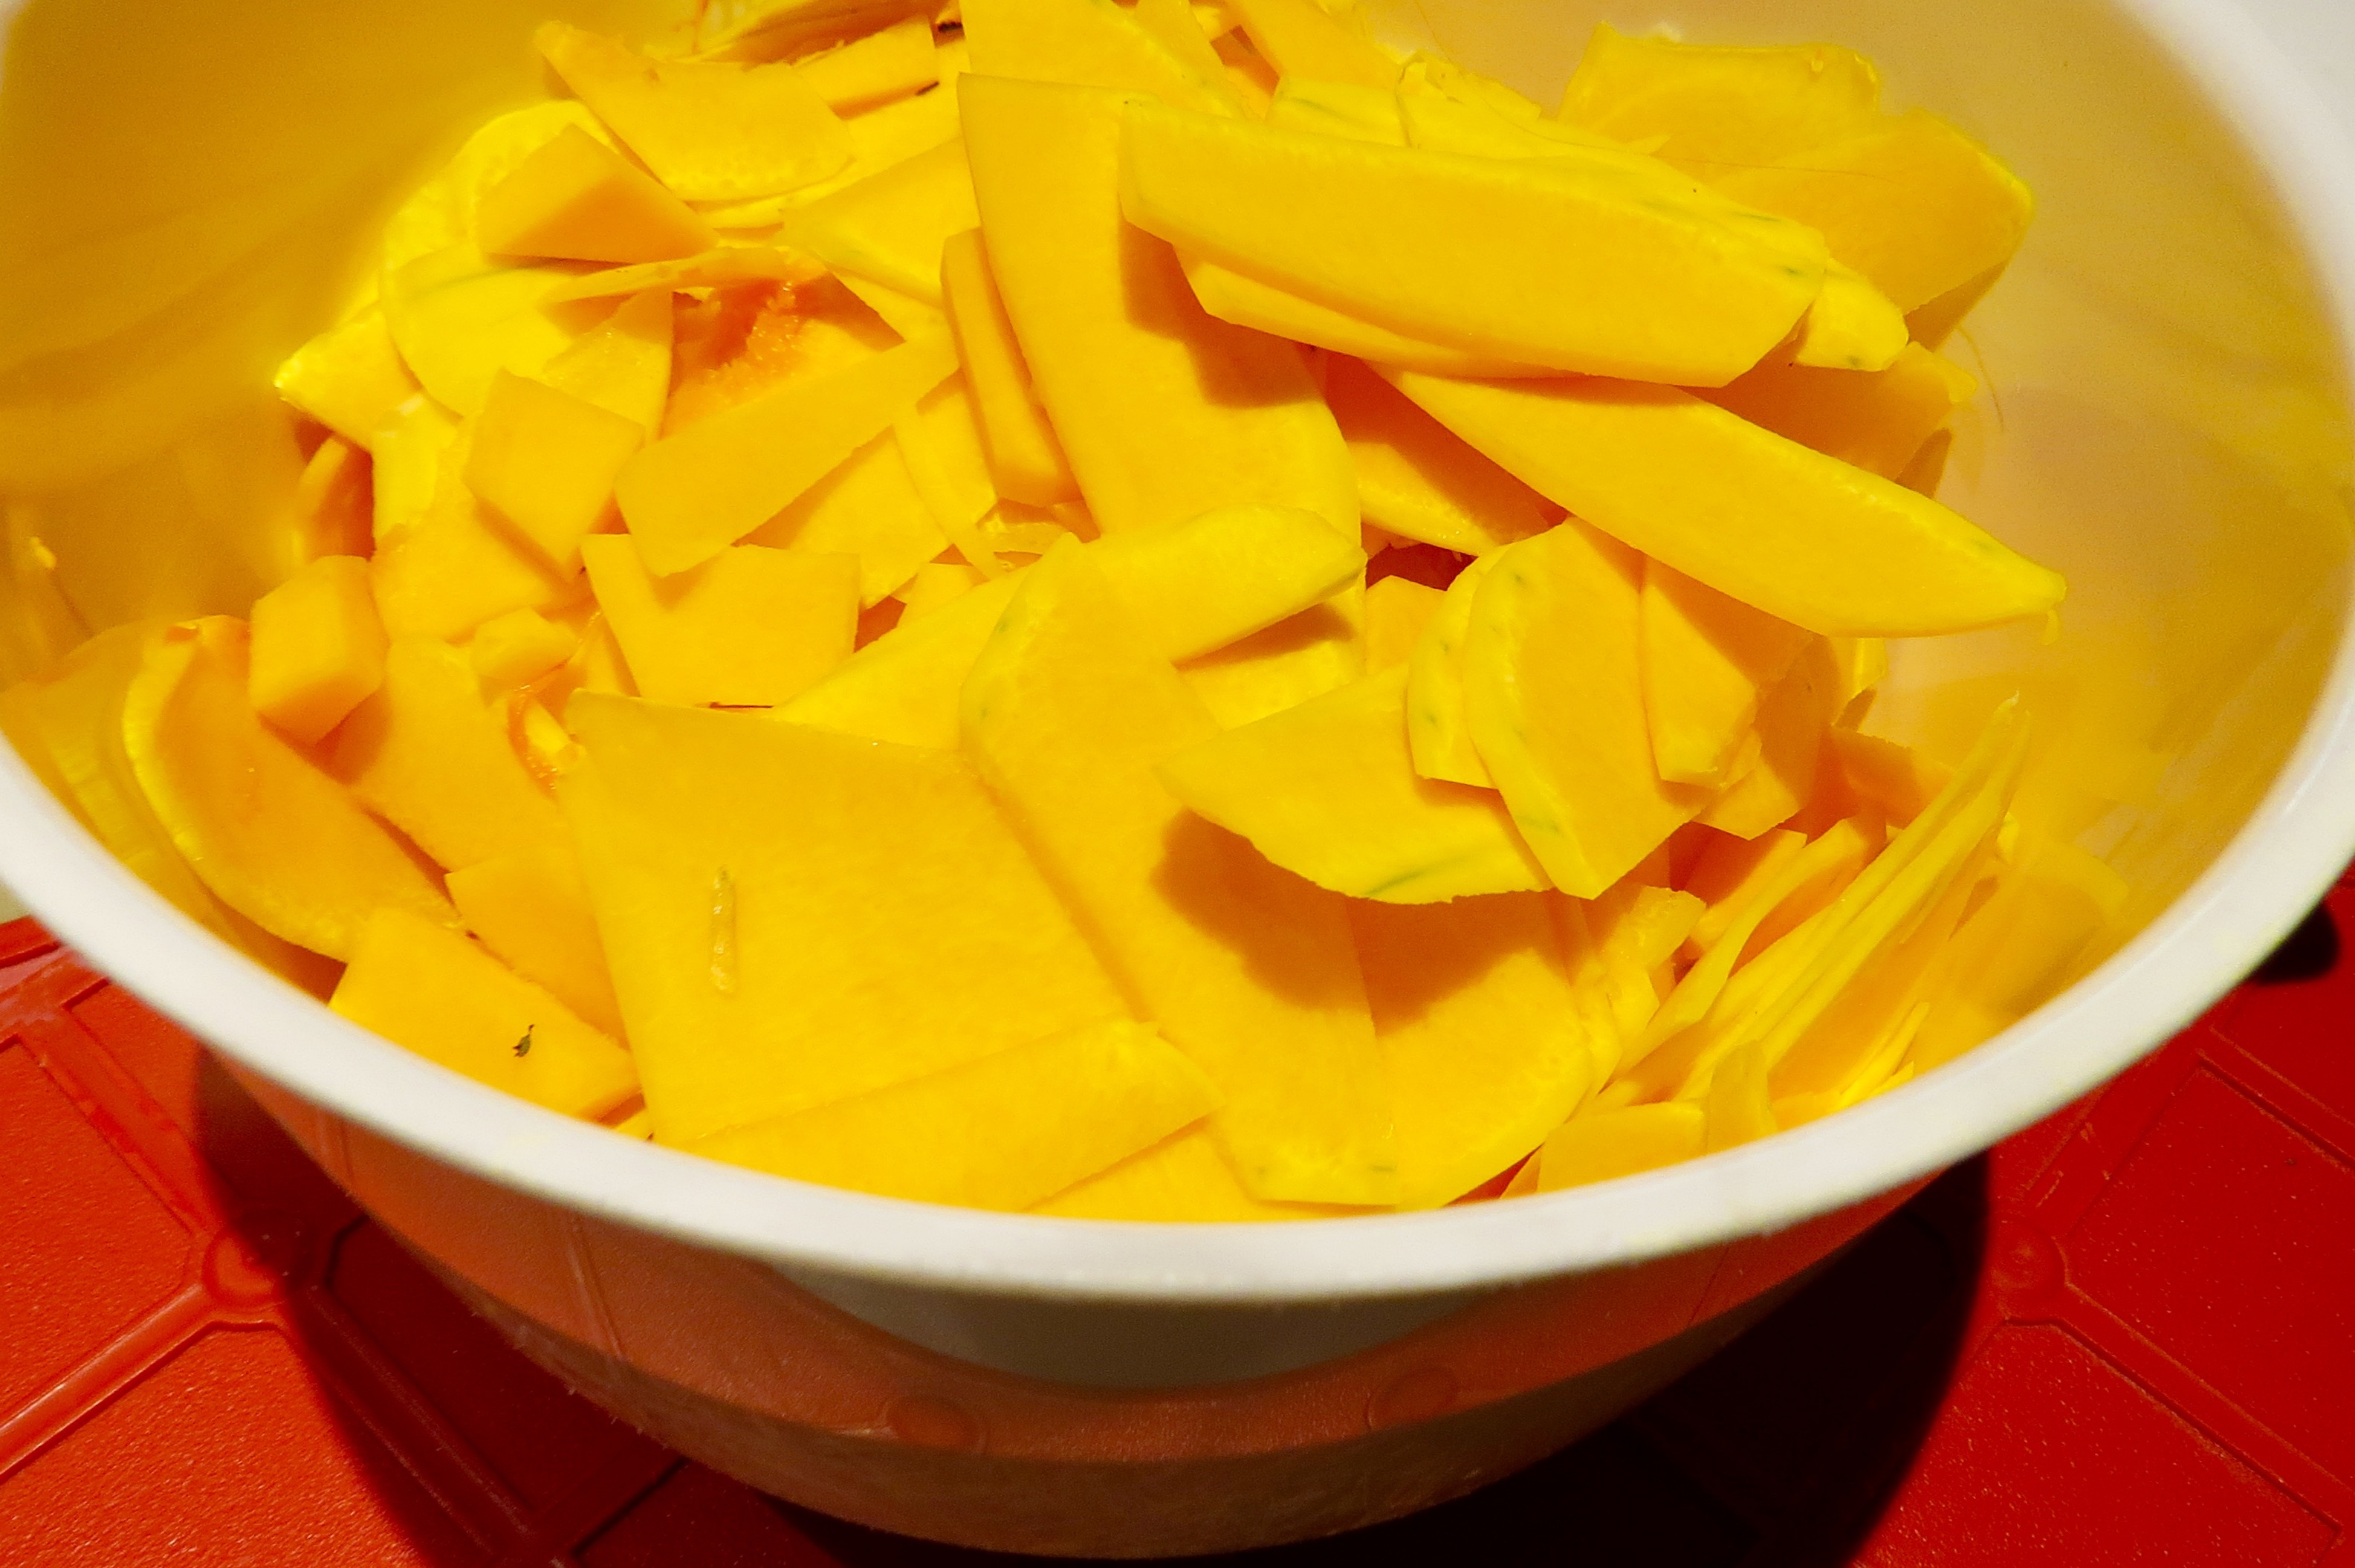 THE SQUASH, THINLY SLICED